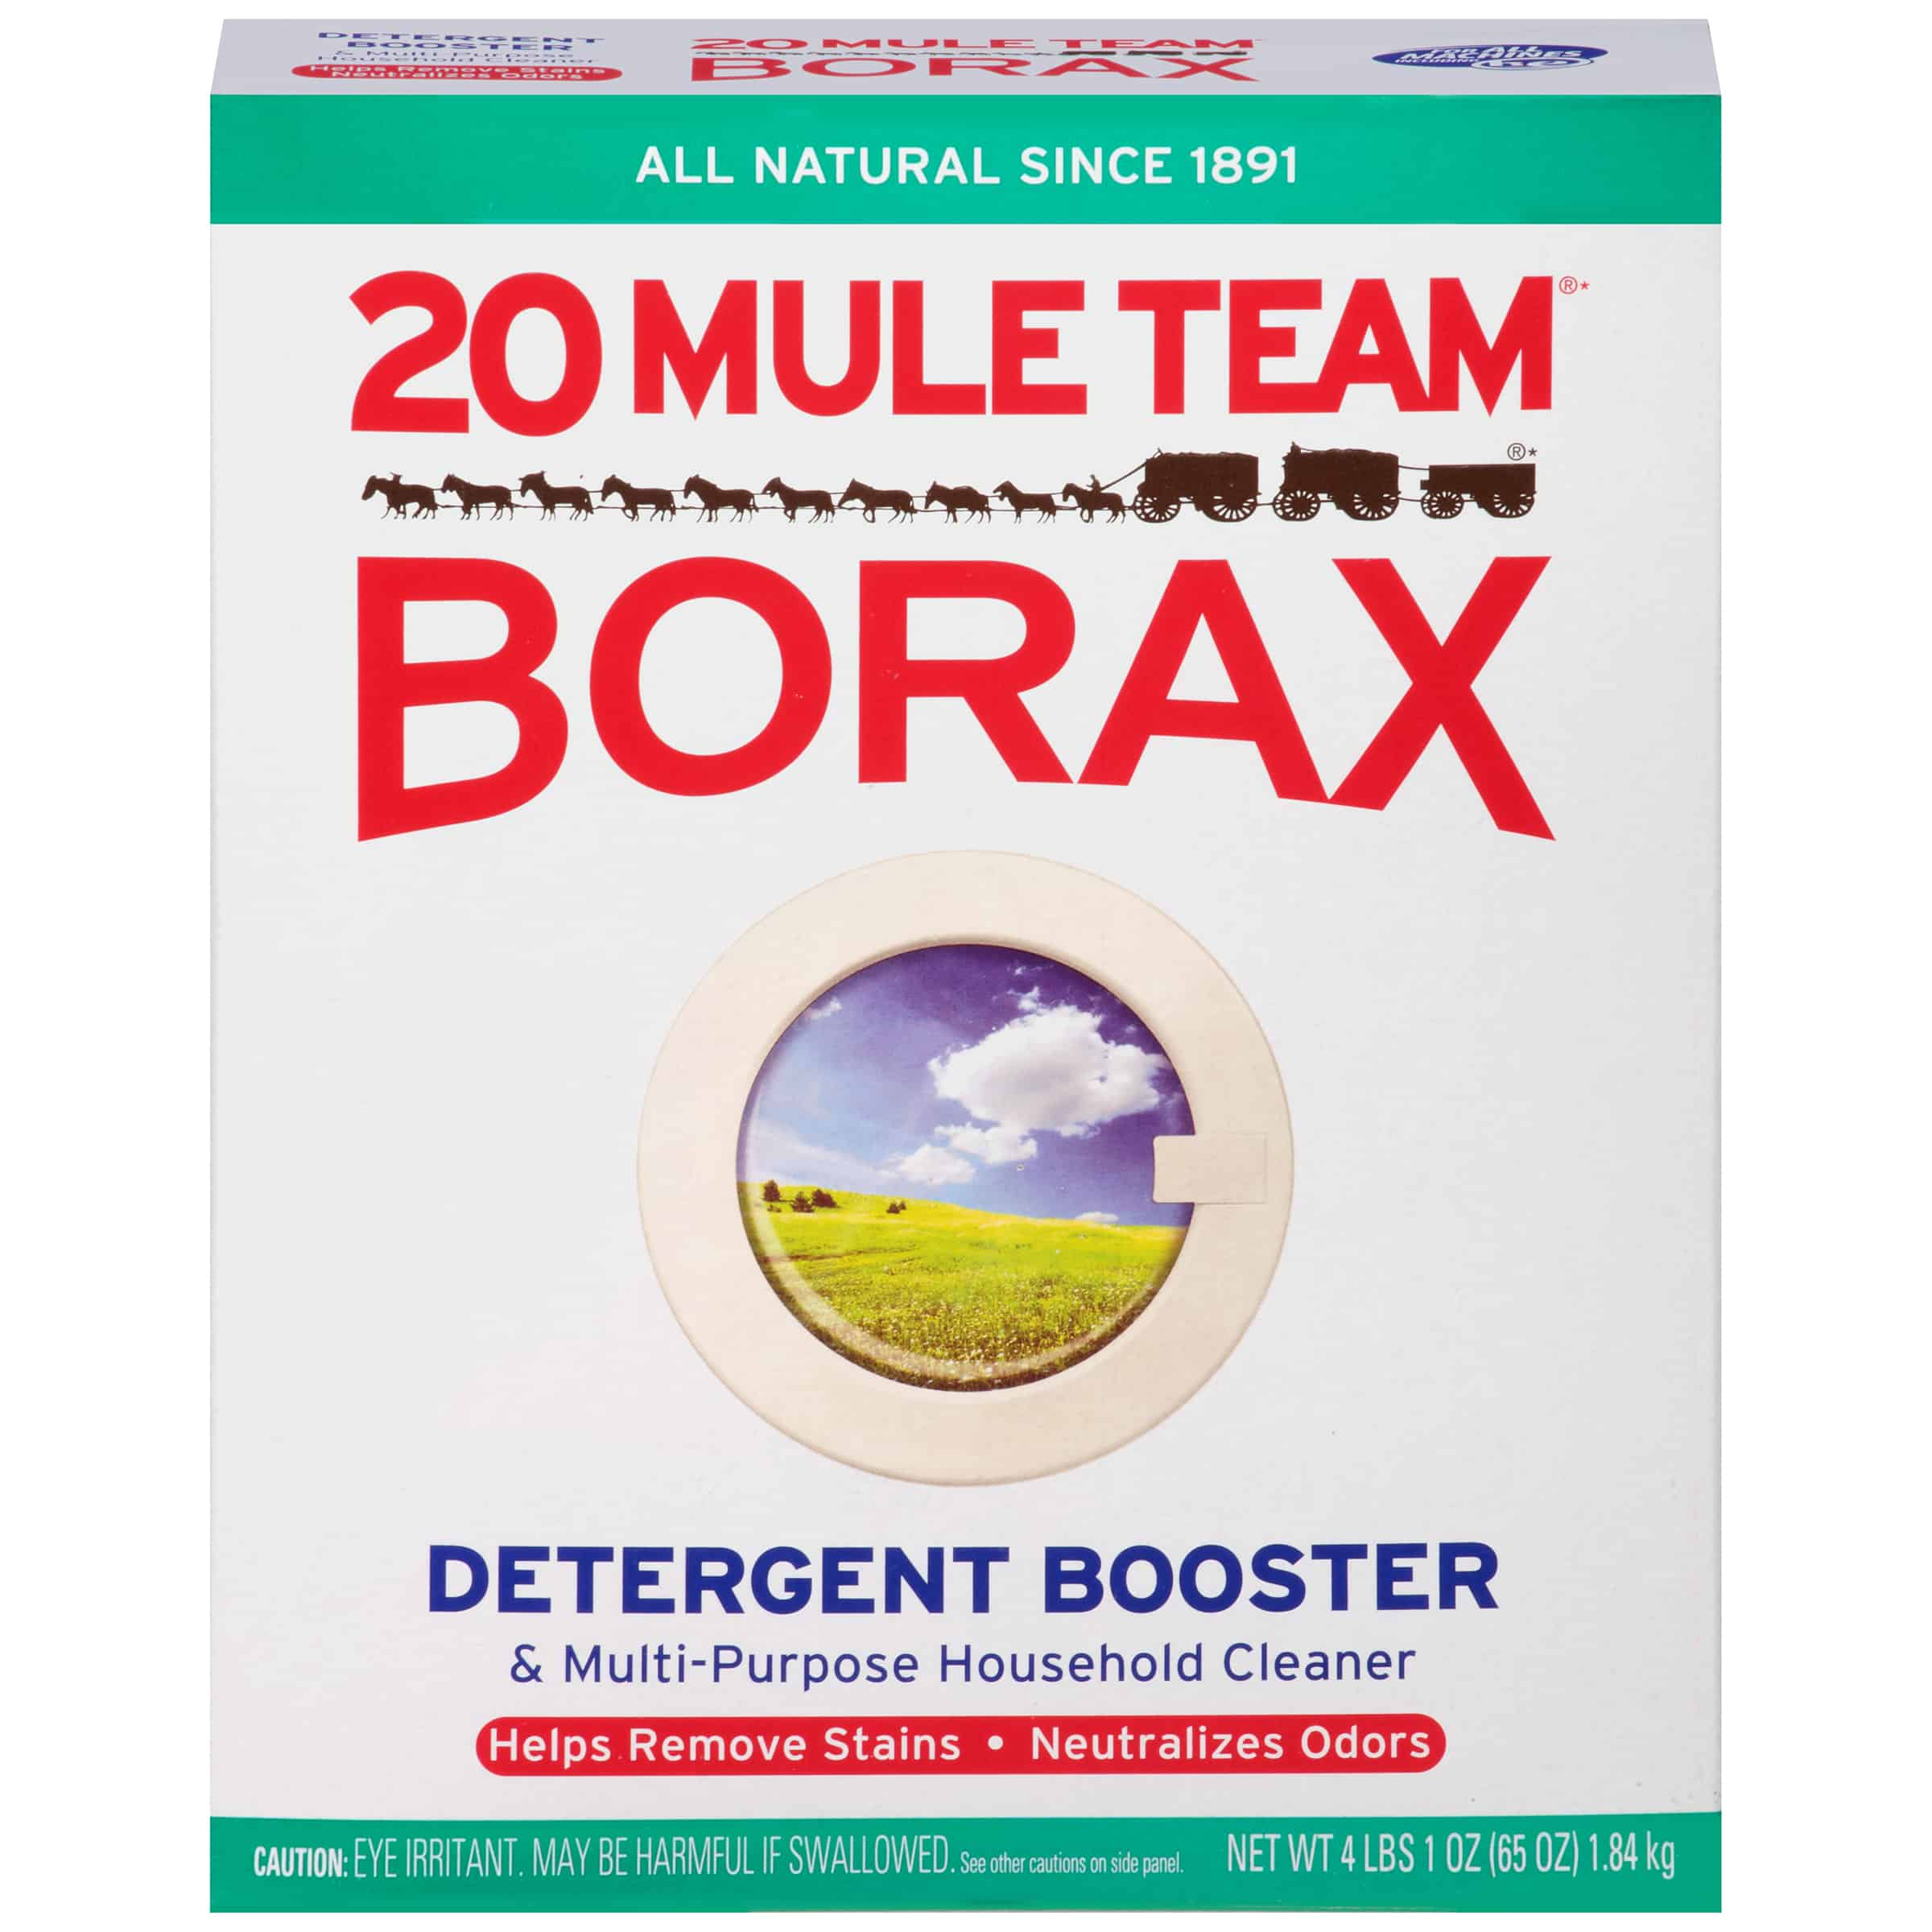 20 Mule Team Borax Detergent Booster & Multi-Purpose Household Cleaner, 65 Ounce - Walmart.com